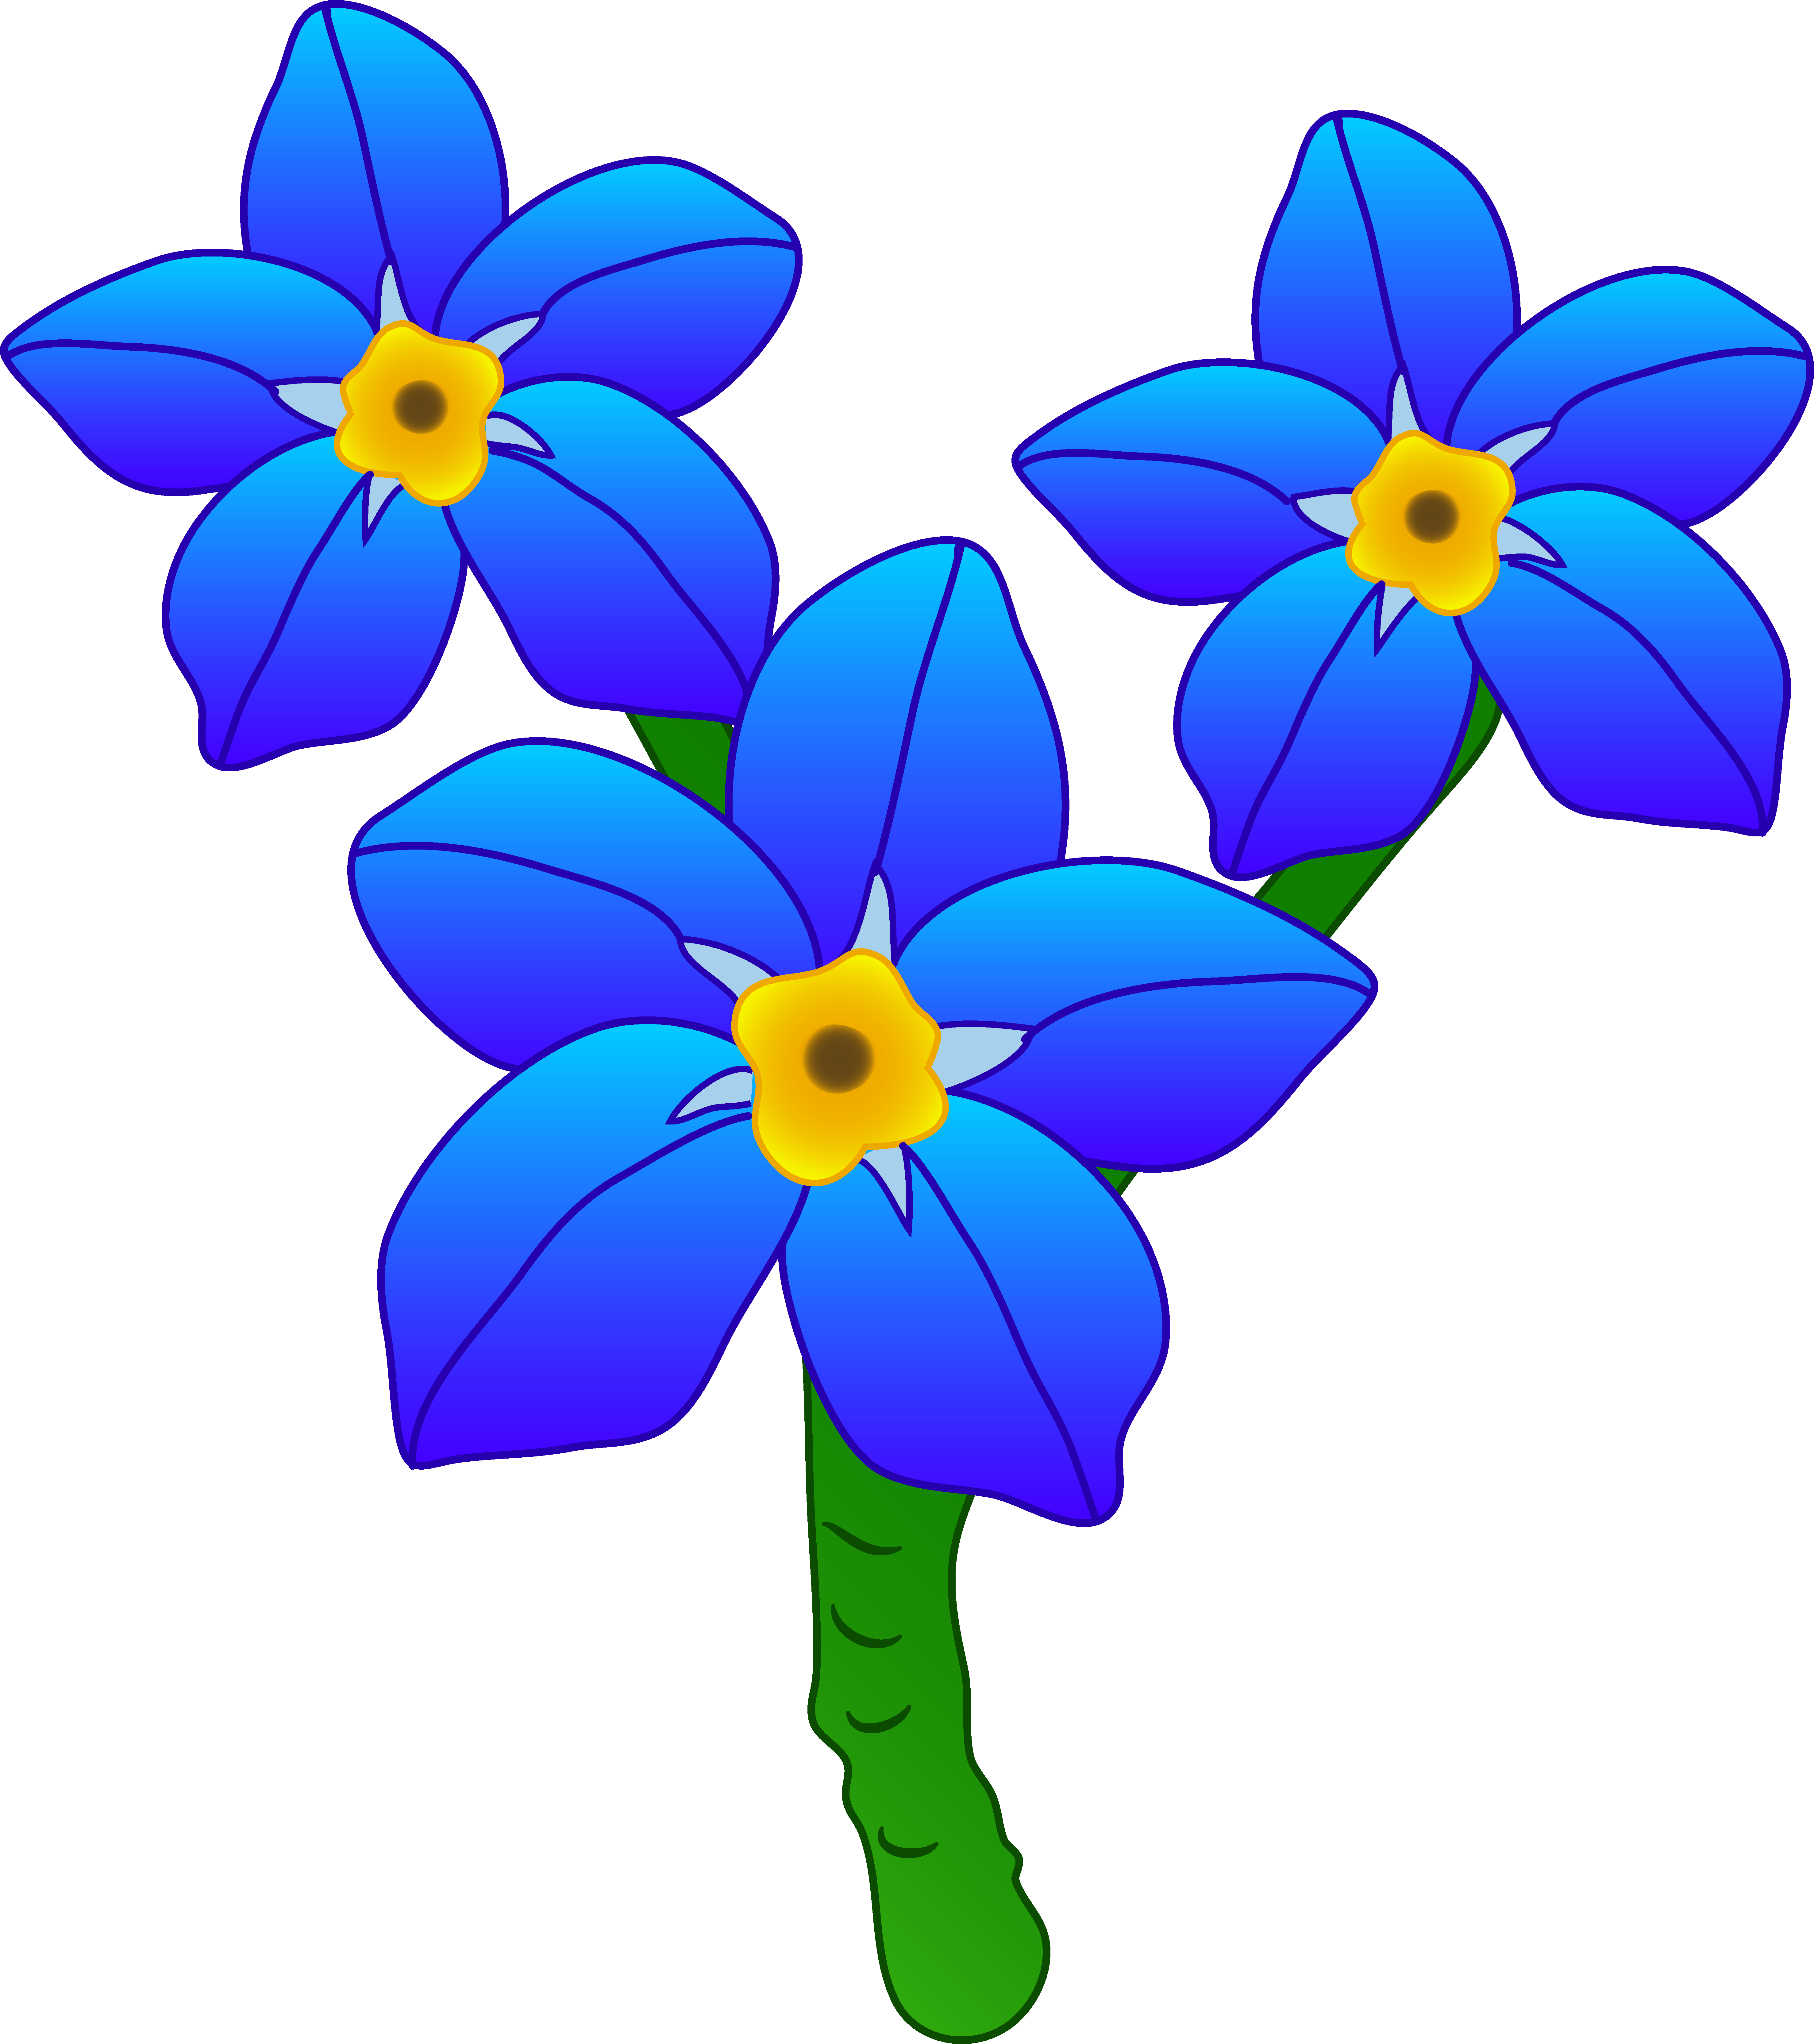 Weird flower clipart svg royalty free library Proven Flower Cartoon Pictures Clip Art Three Forget Me Not Flowers ... svg royalty free library